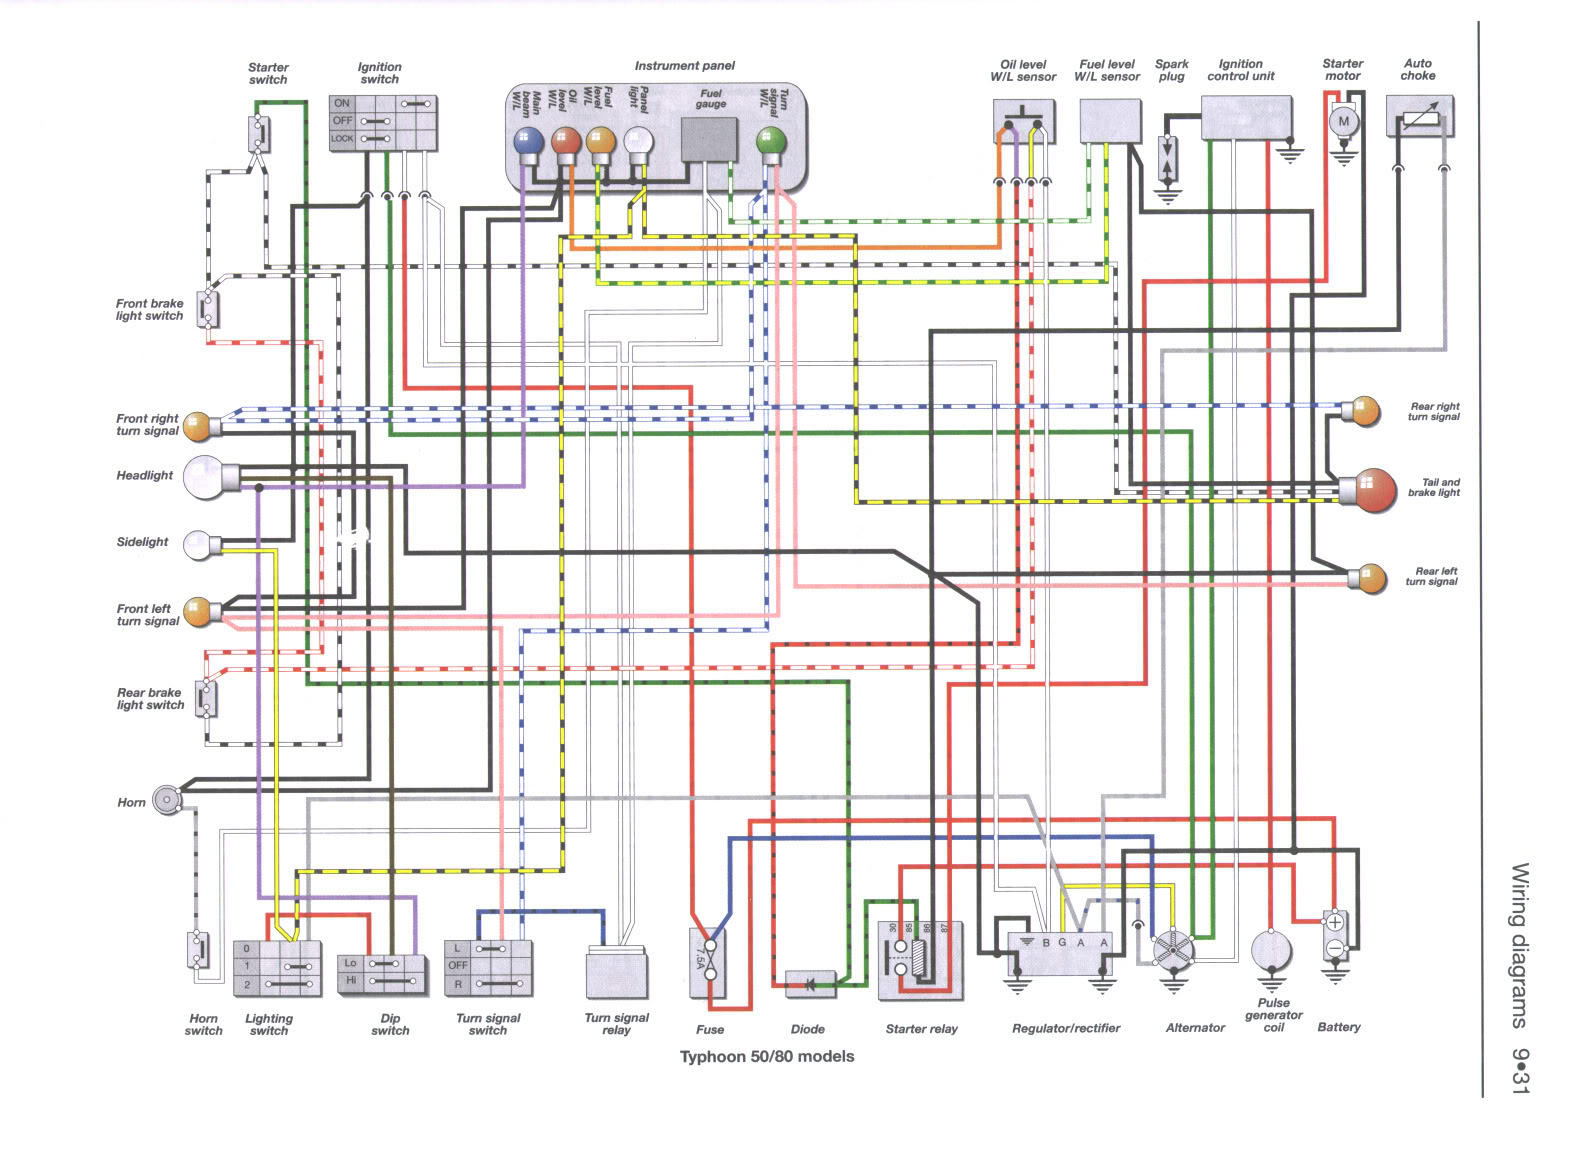 Piaggio Typhoon Wiring Diagram Diagrams Scematic Chinese Scooters Scooter Shack Forum Motorcycles